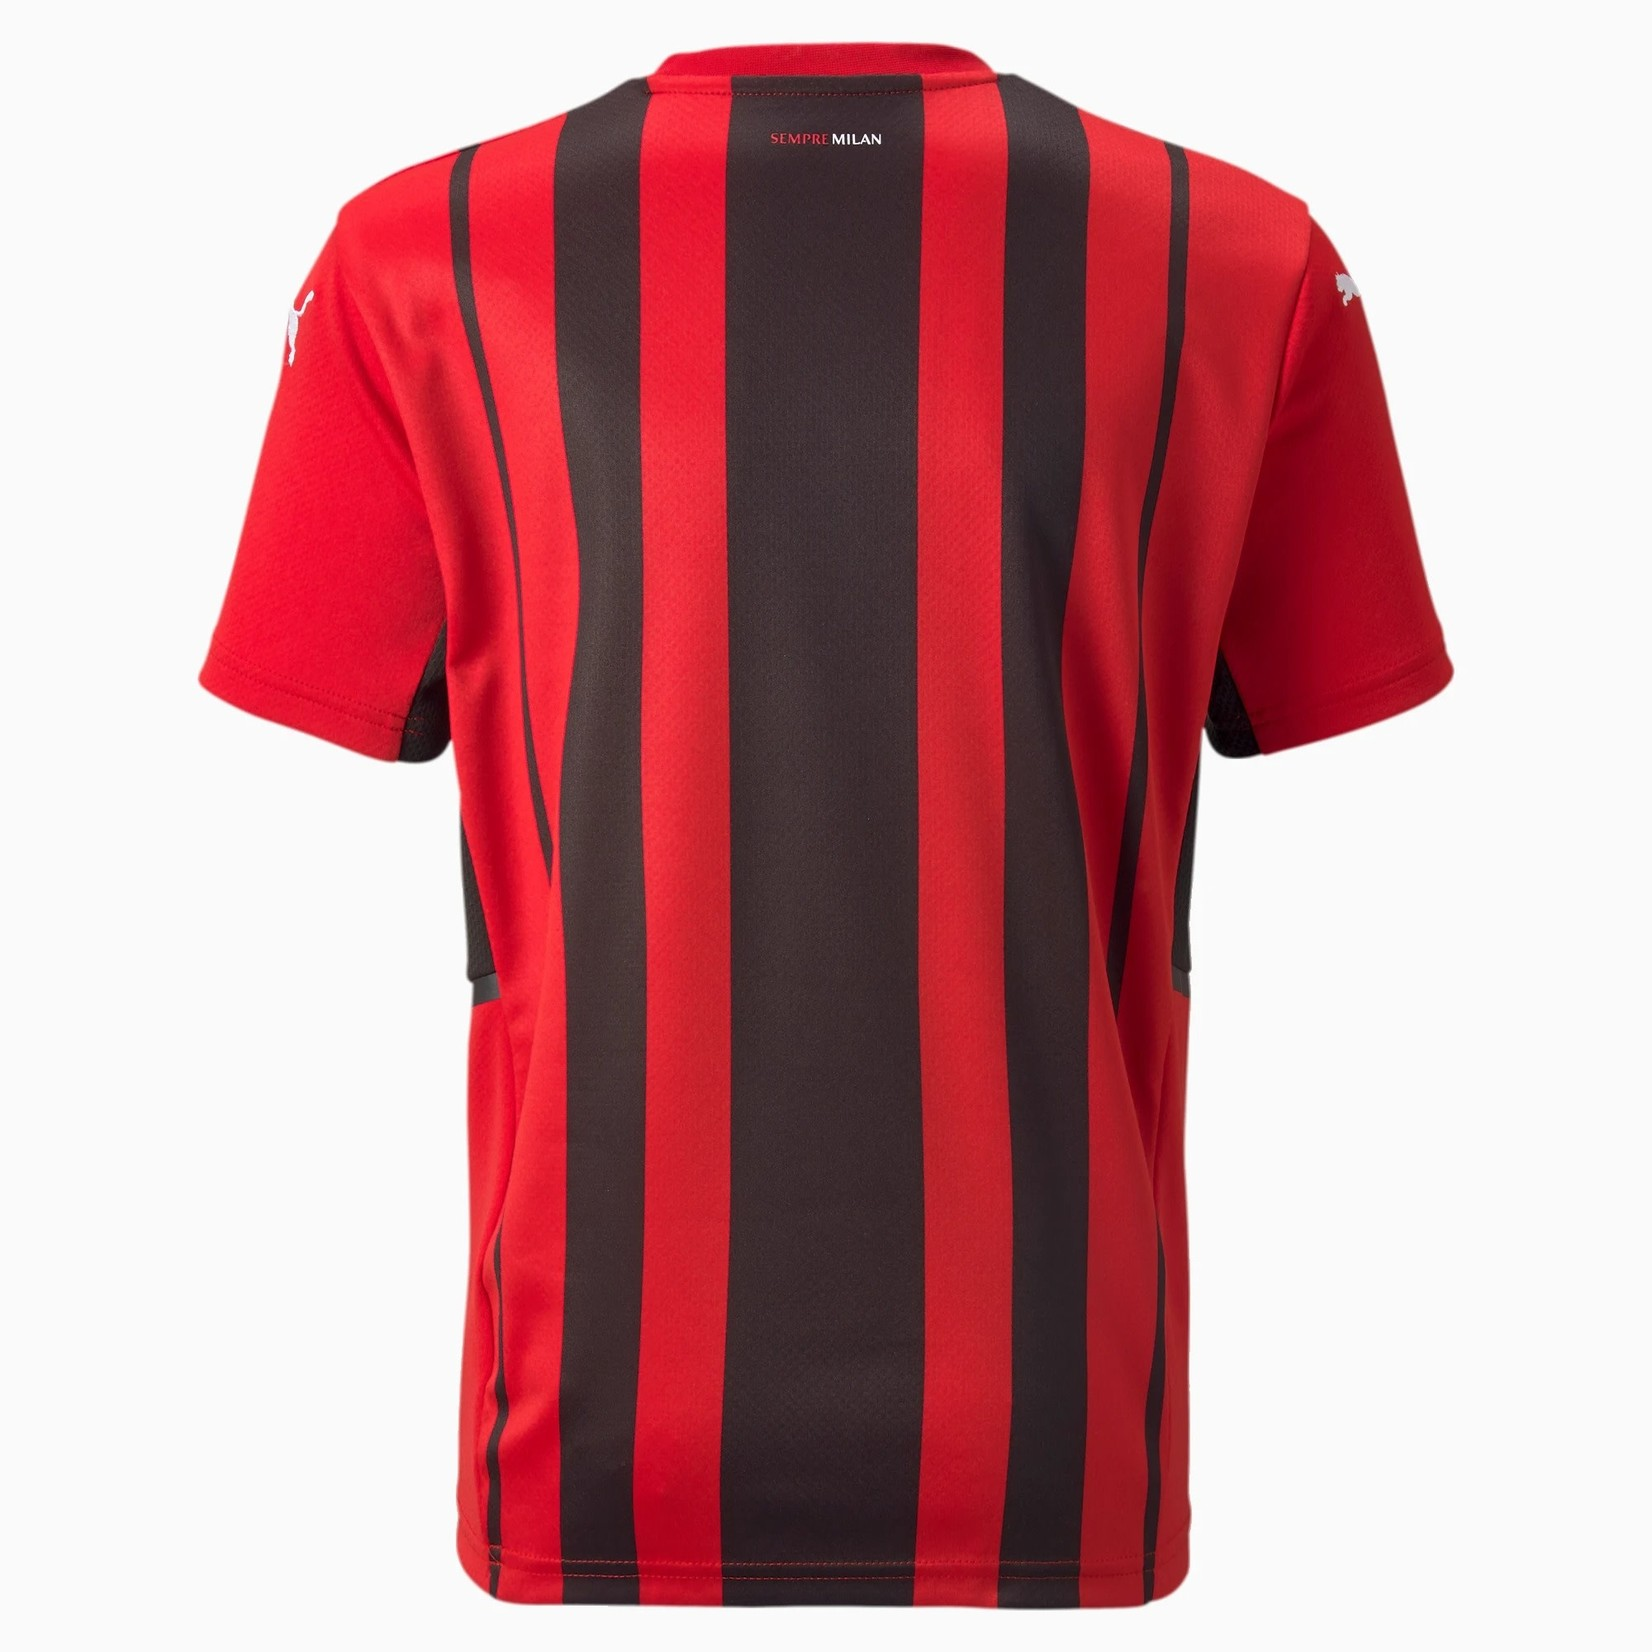 PUMA AC MILAN 21/22 HOME JERSEY YOUTH (RED/BLACK)